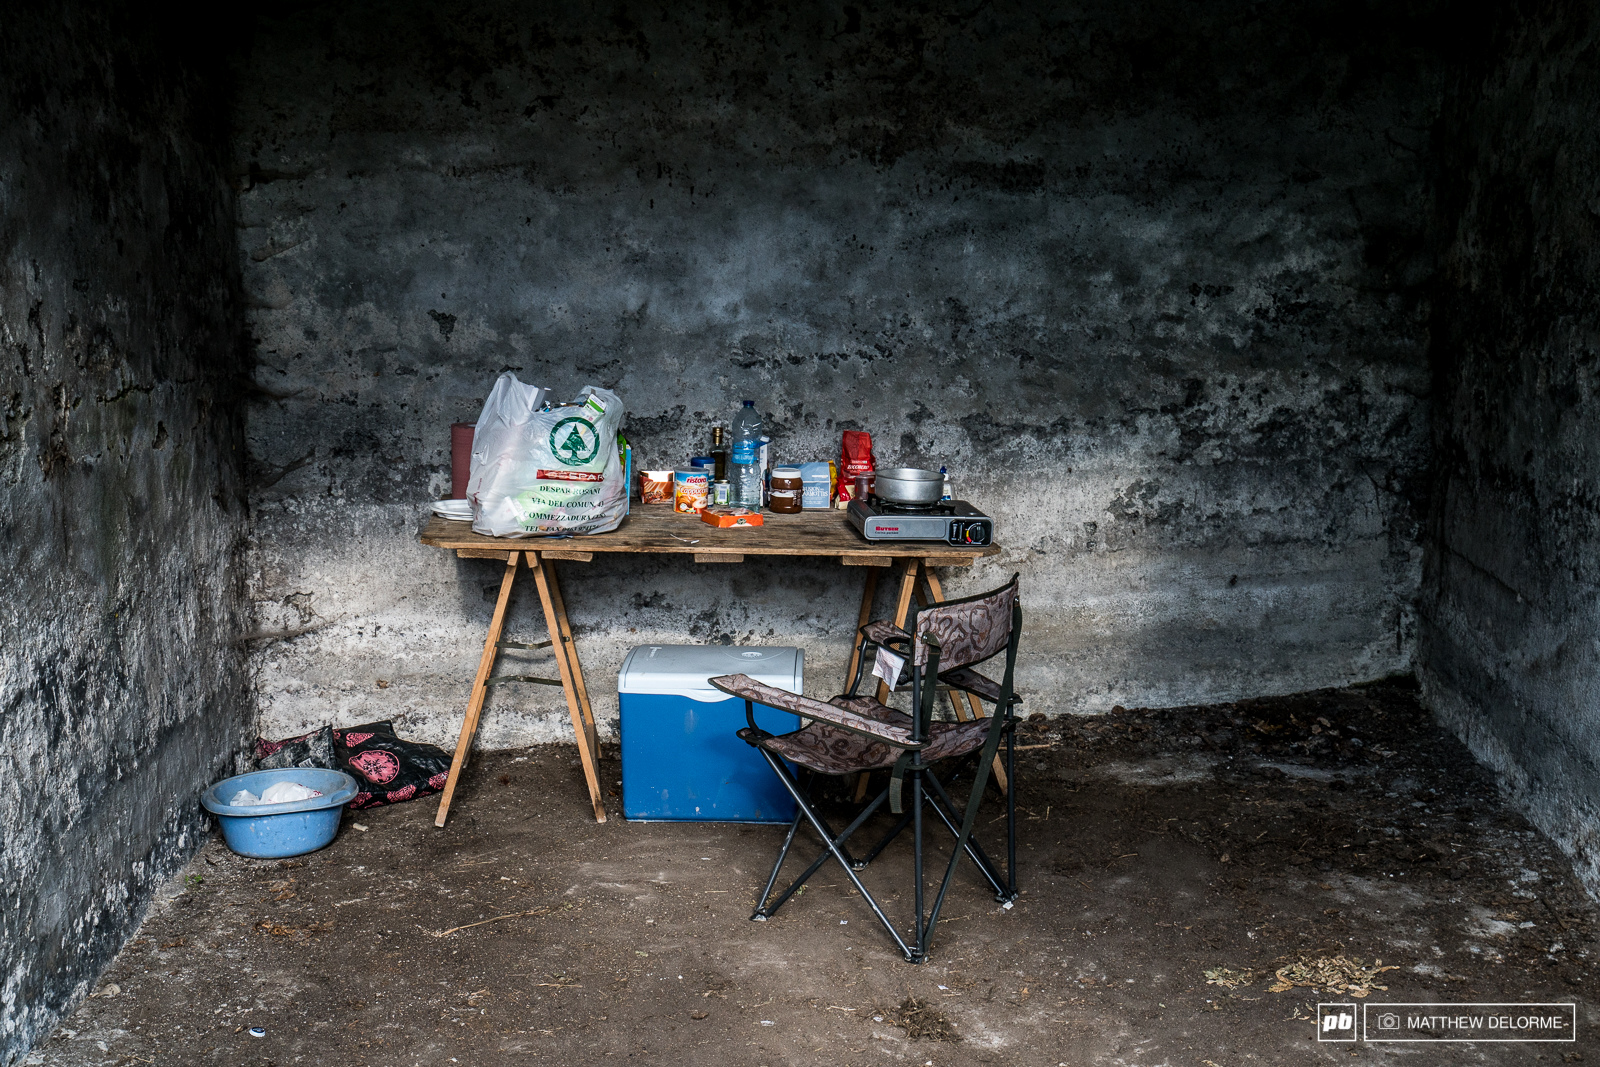 World Cup racing isn t all glamour. This kitchen setup in a rustic open basement is all you need to keep warm and nourished though.